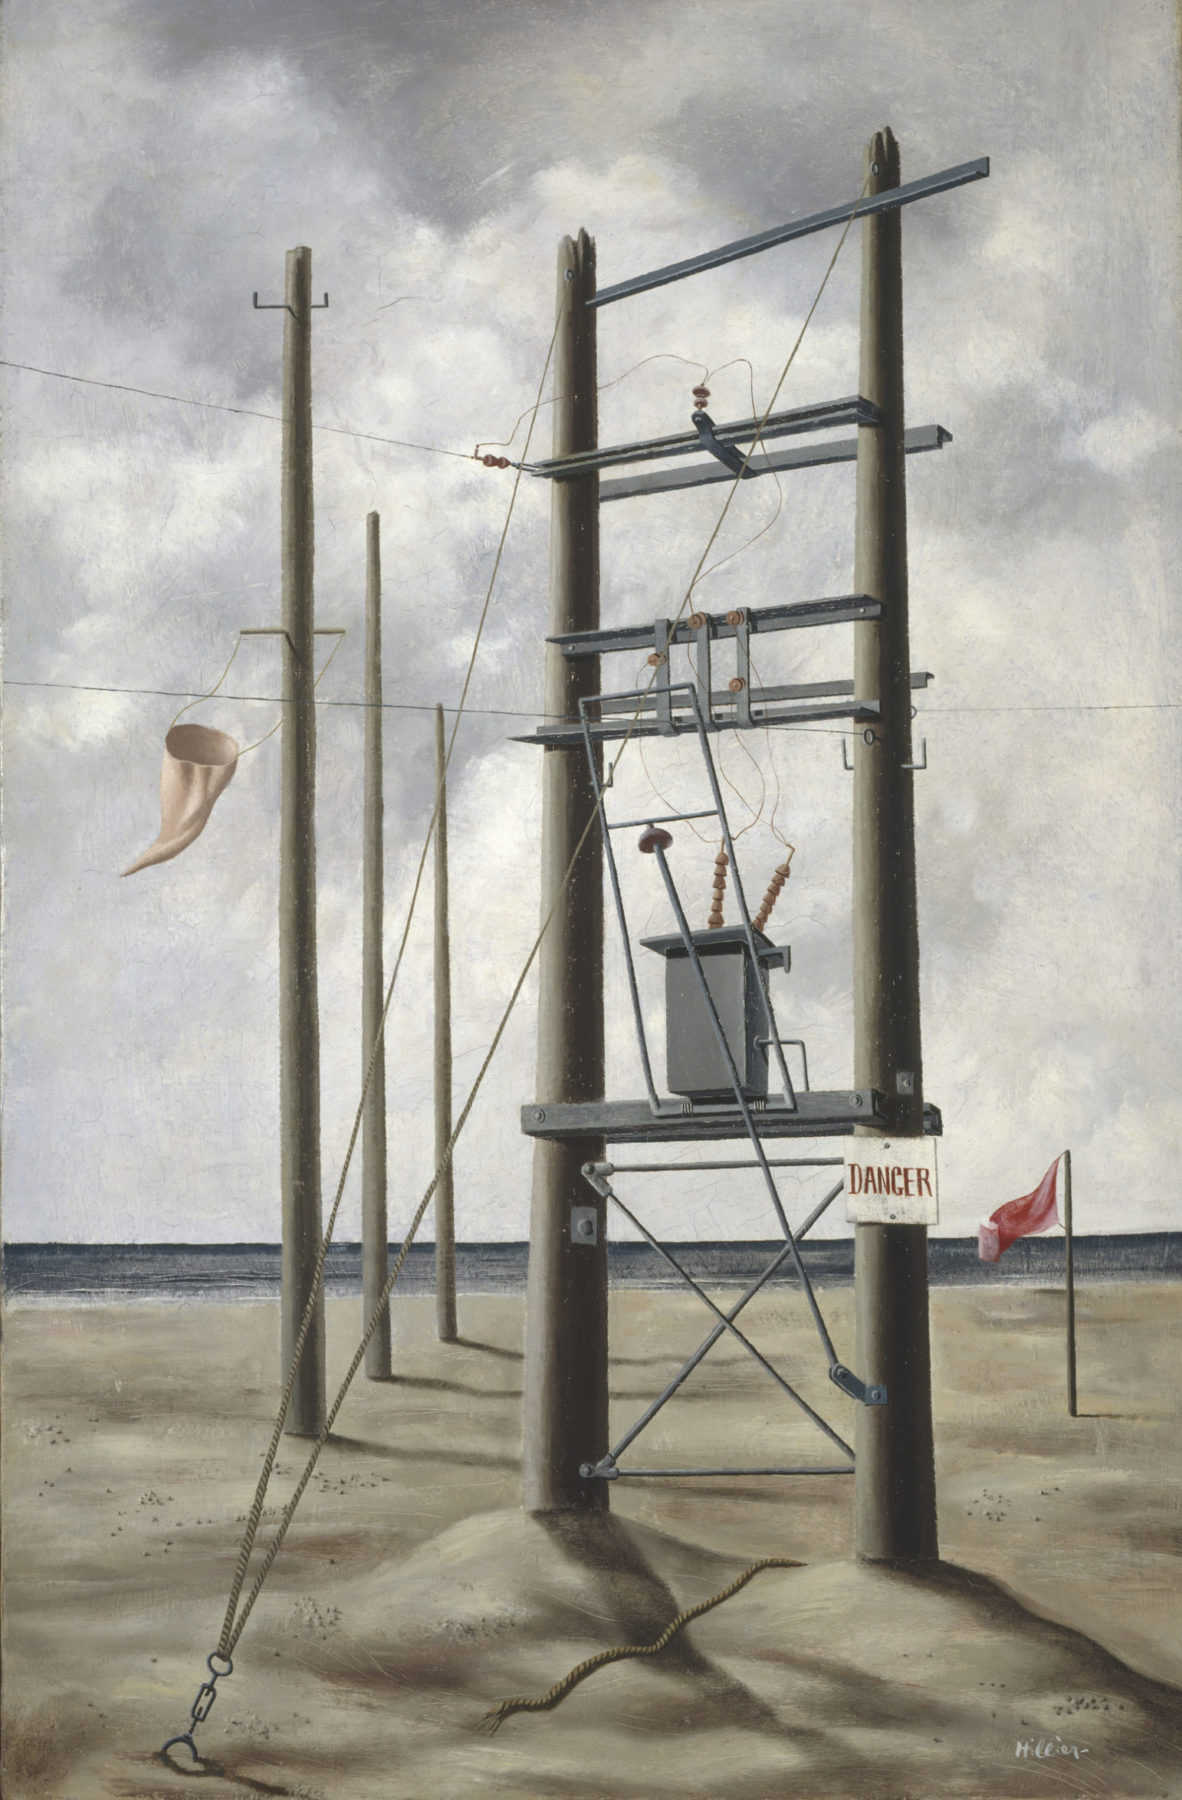 A grey-beige electricity pylon consisting of two wooden columns and metal slats is shown on a sandy beach. A grey box with wires protruding sits on one of the slats, and a danger sign has been affixed to the right column. Three smaller columns rise behind, one with a white flag blowing in the wind. A gloomy grey sky provides the background to the image. A grey-blue strip of sea is between the sand and sky.